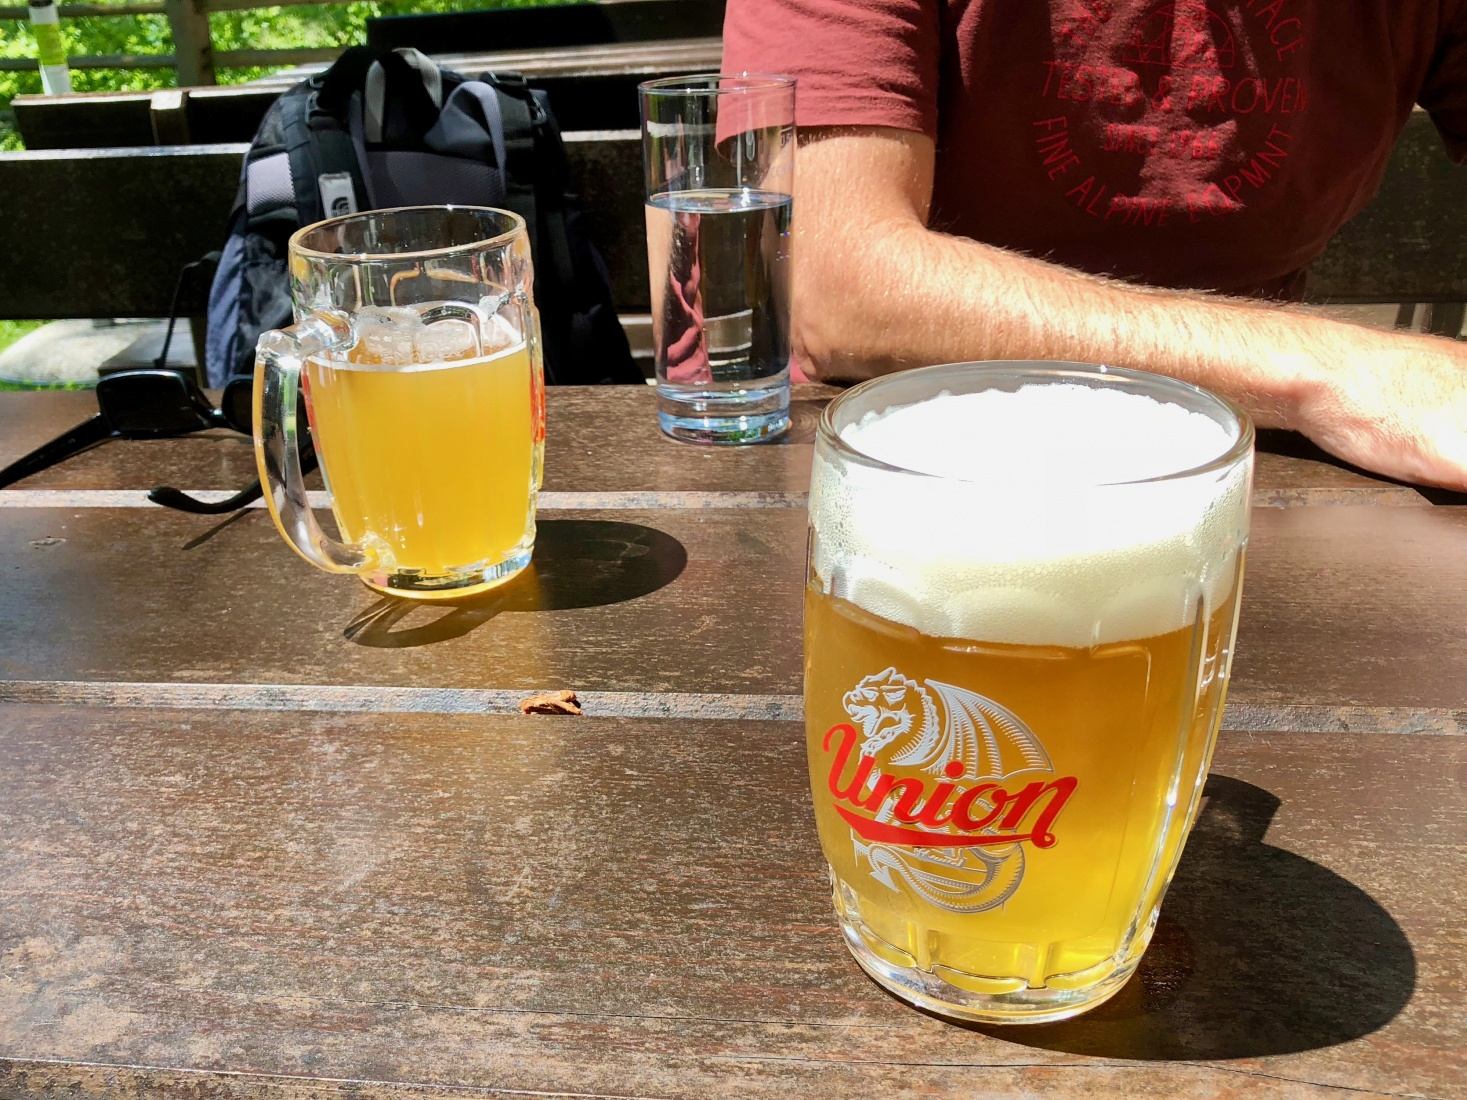 Mugs of Union beer at lunch at a beautiful inn and farmhouse,